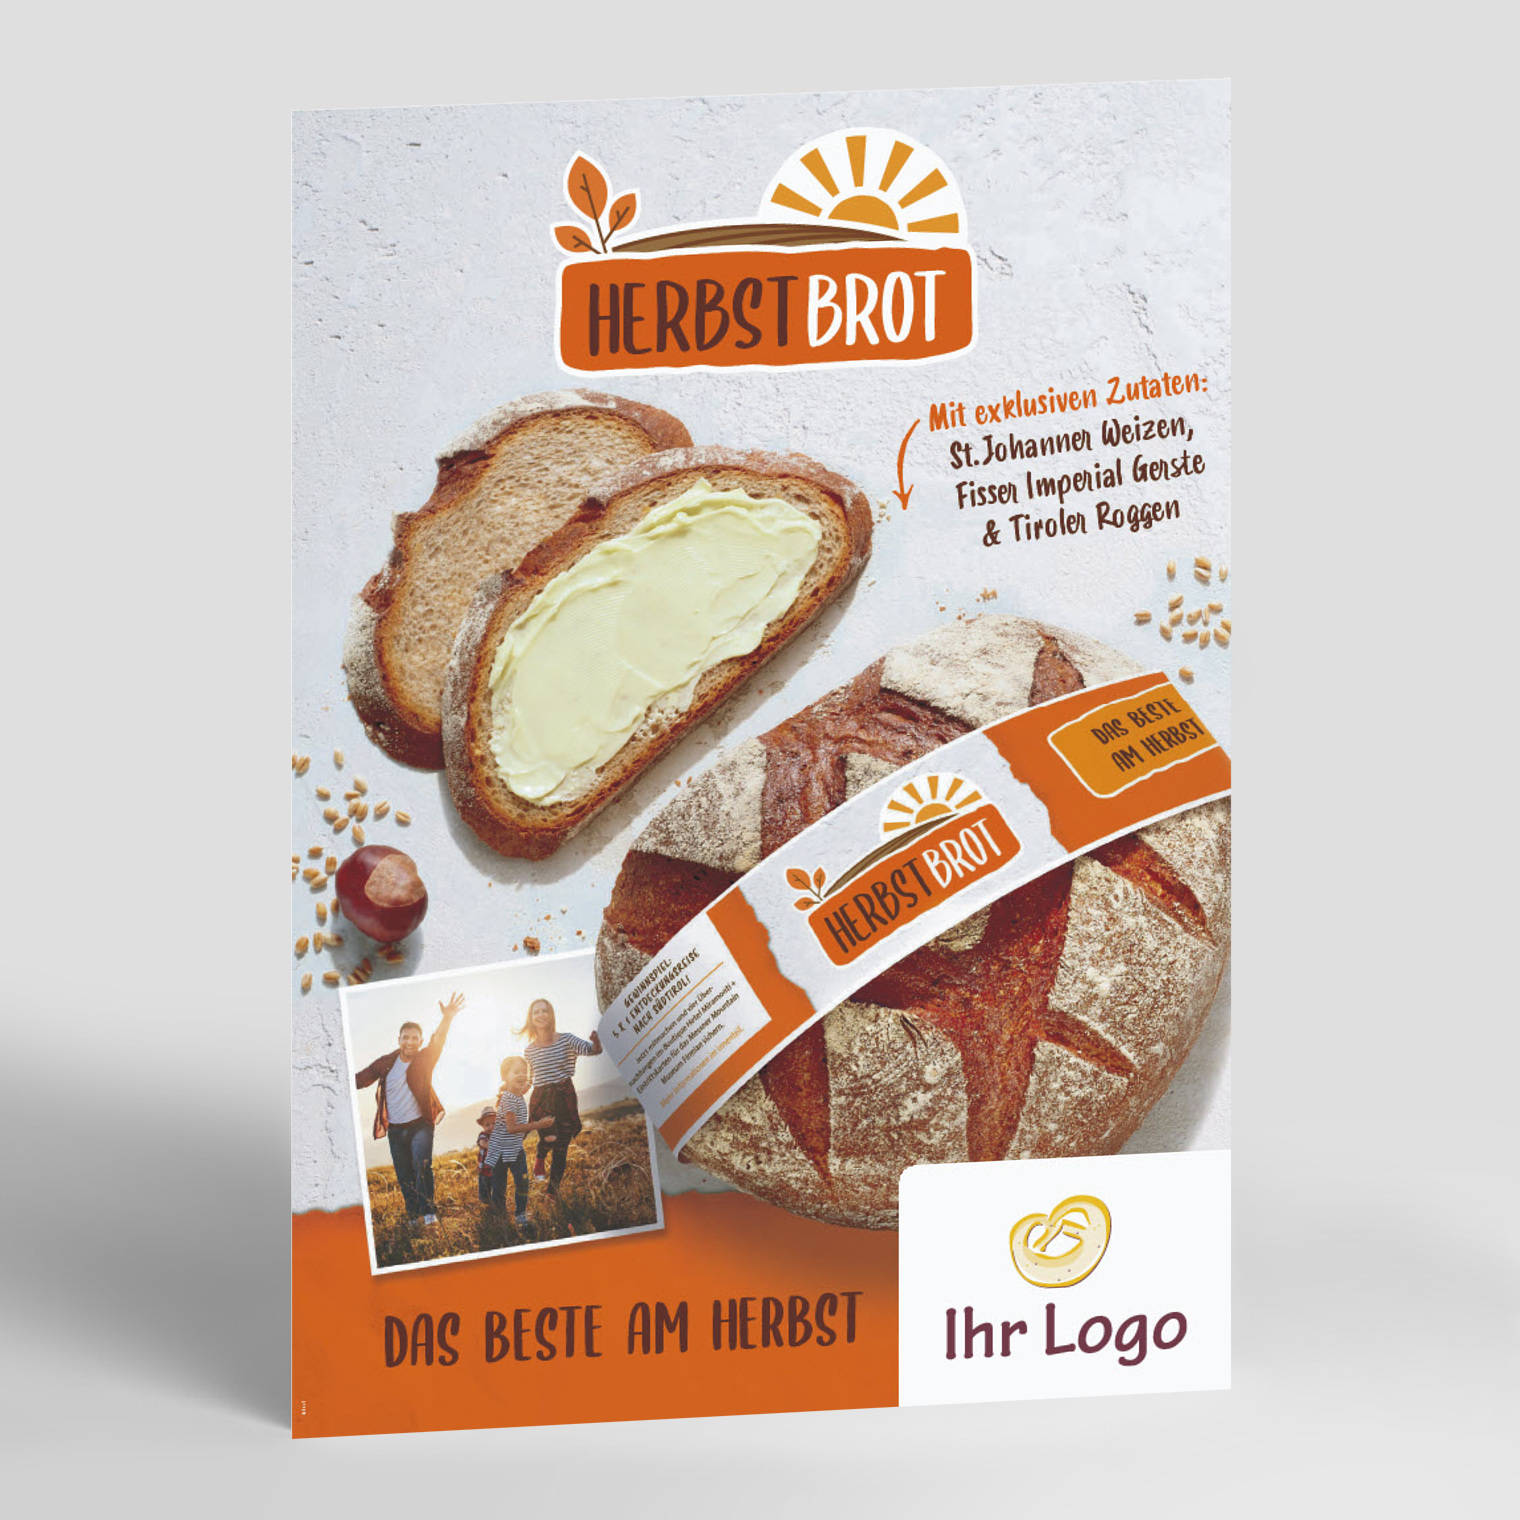 Poster A3 Herbstbrot